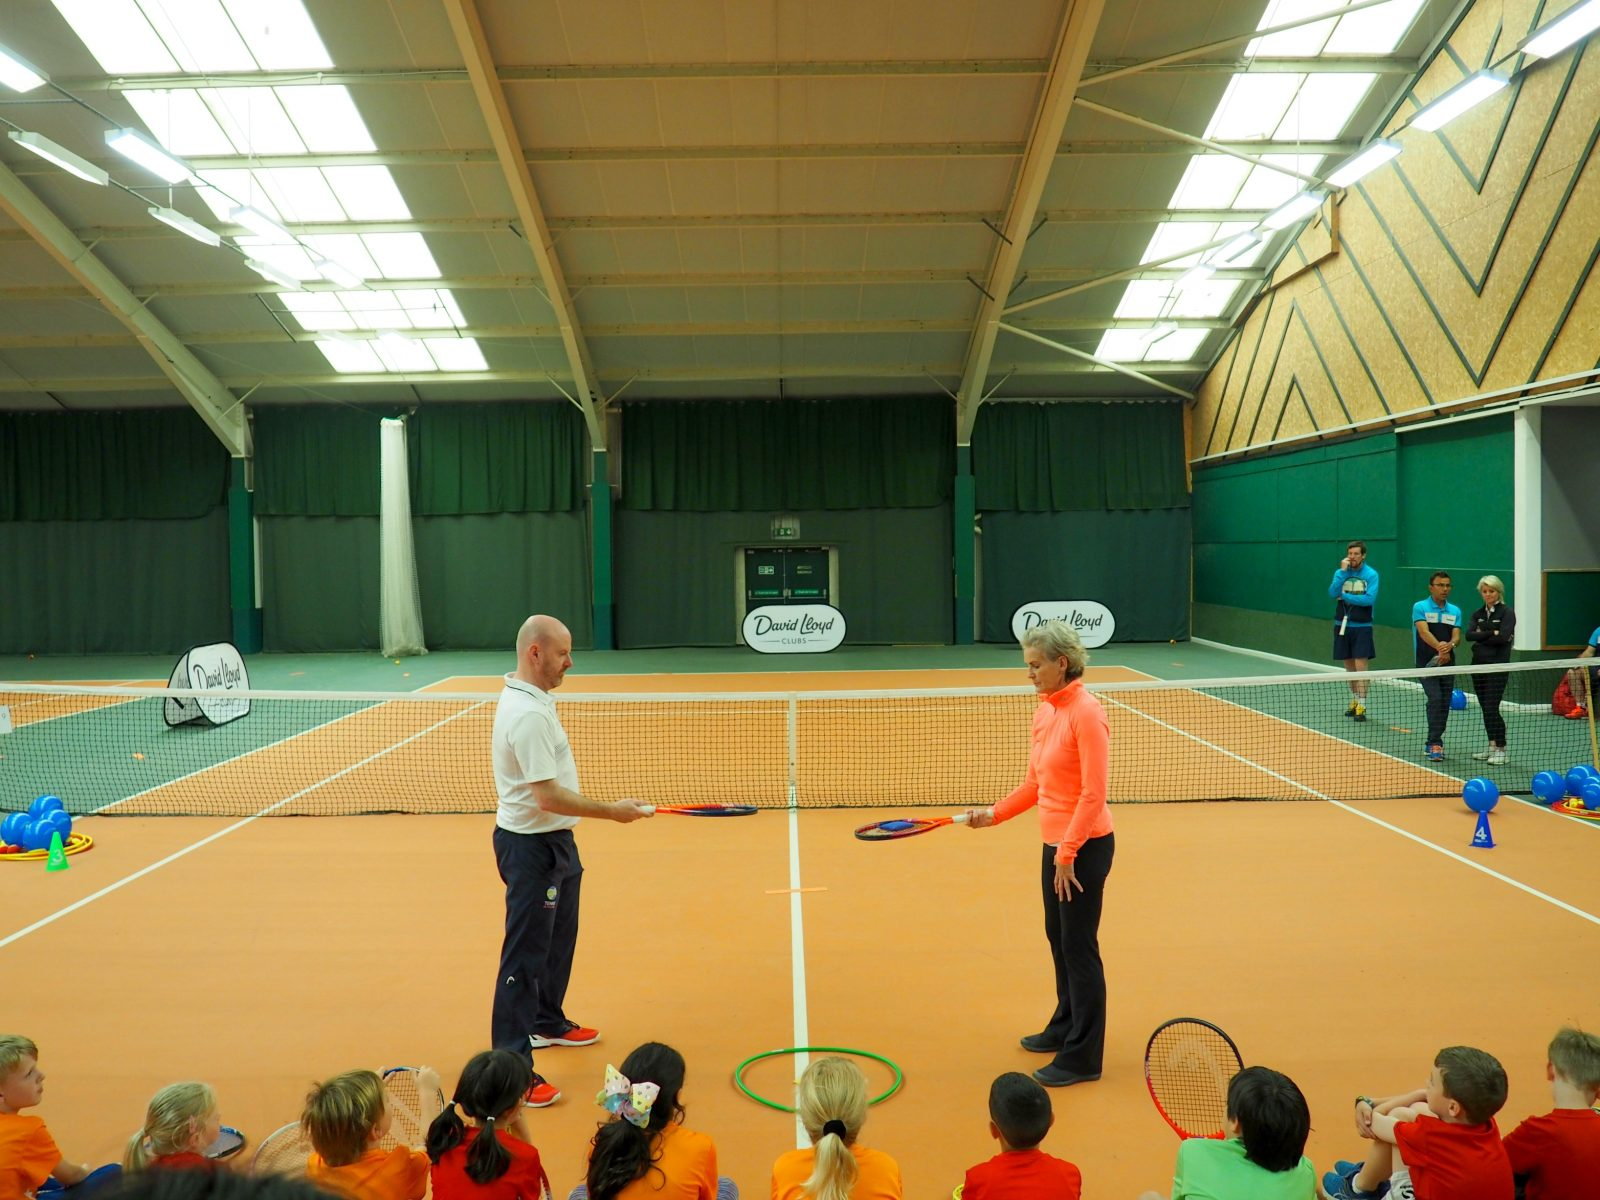 Perfecting our tennis skills with Judy Murray OBE and David Lloyd Clubs